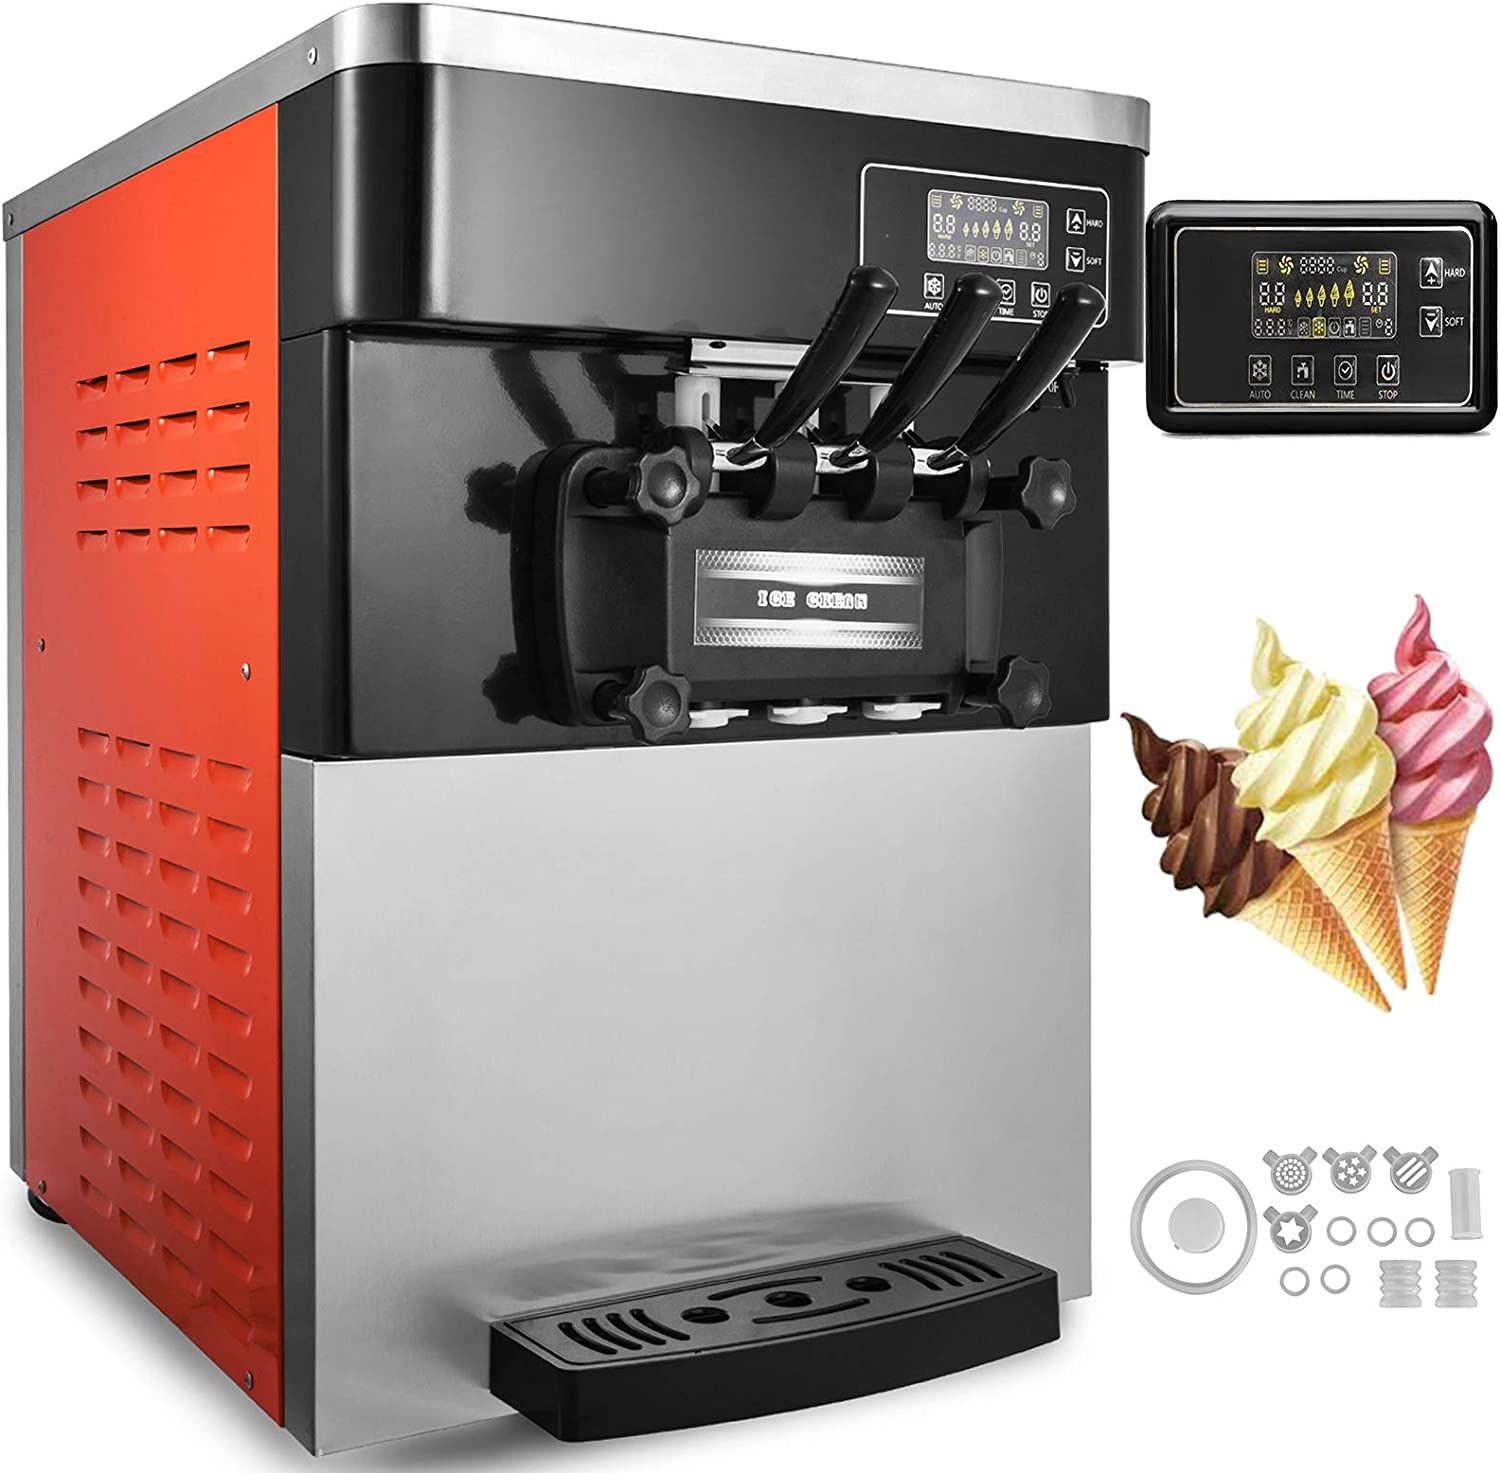 Happybuy Commercial Soft Ice Cream Machine 5.3-7.4Gallons/H 3 Flavors Perfect for Restaurants Snack Bar Supermarkets